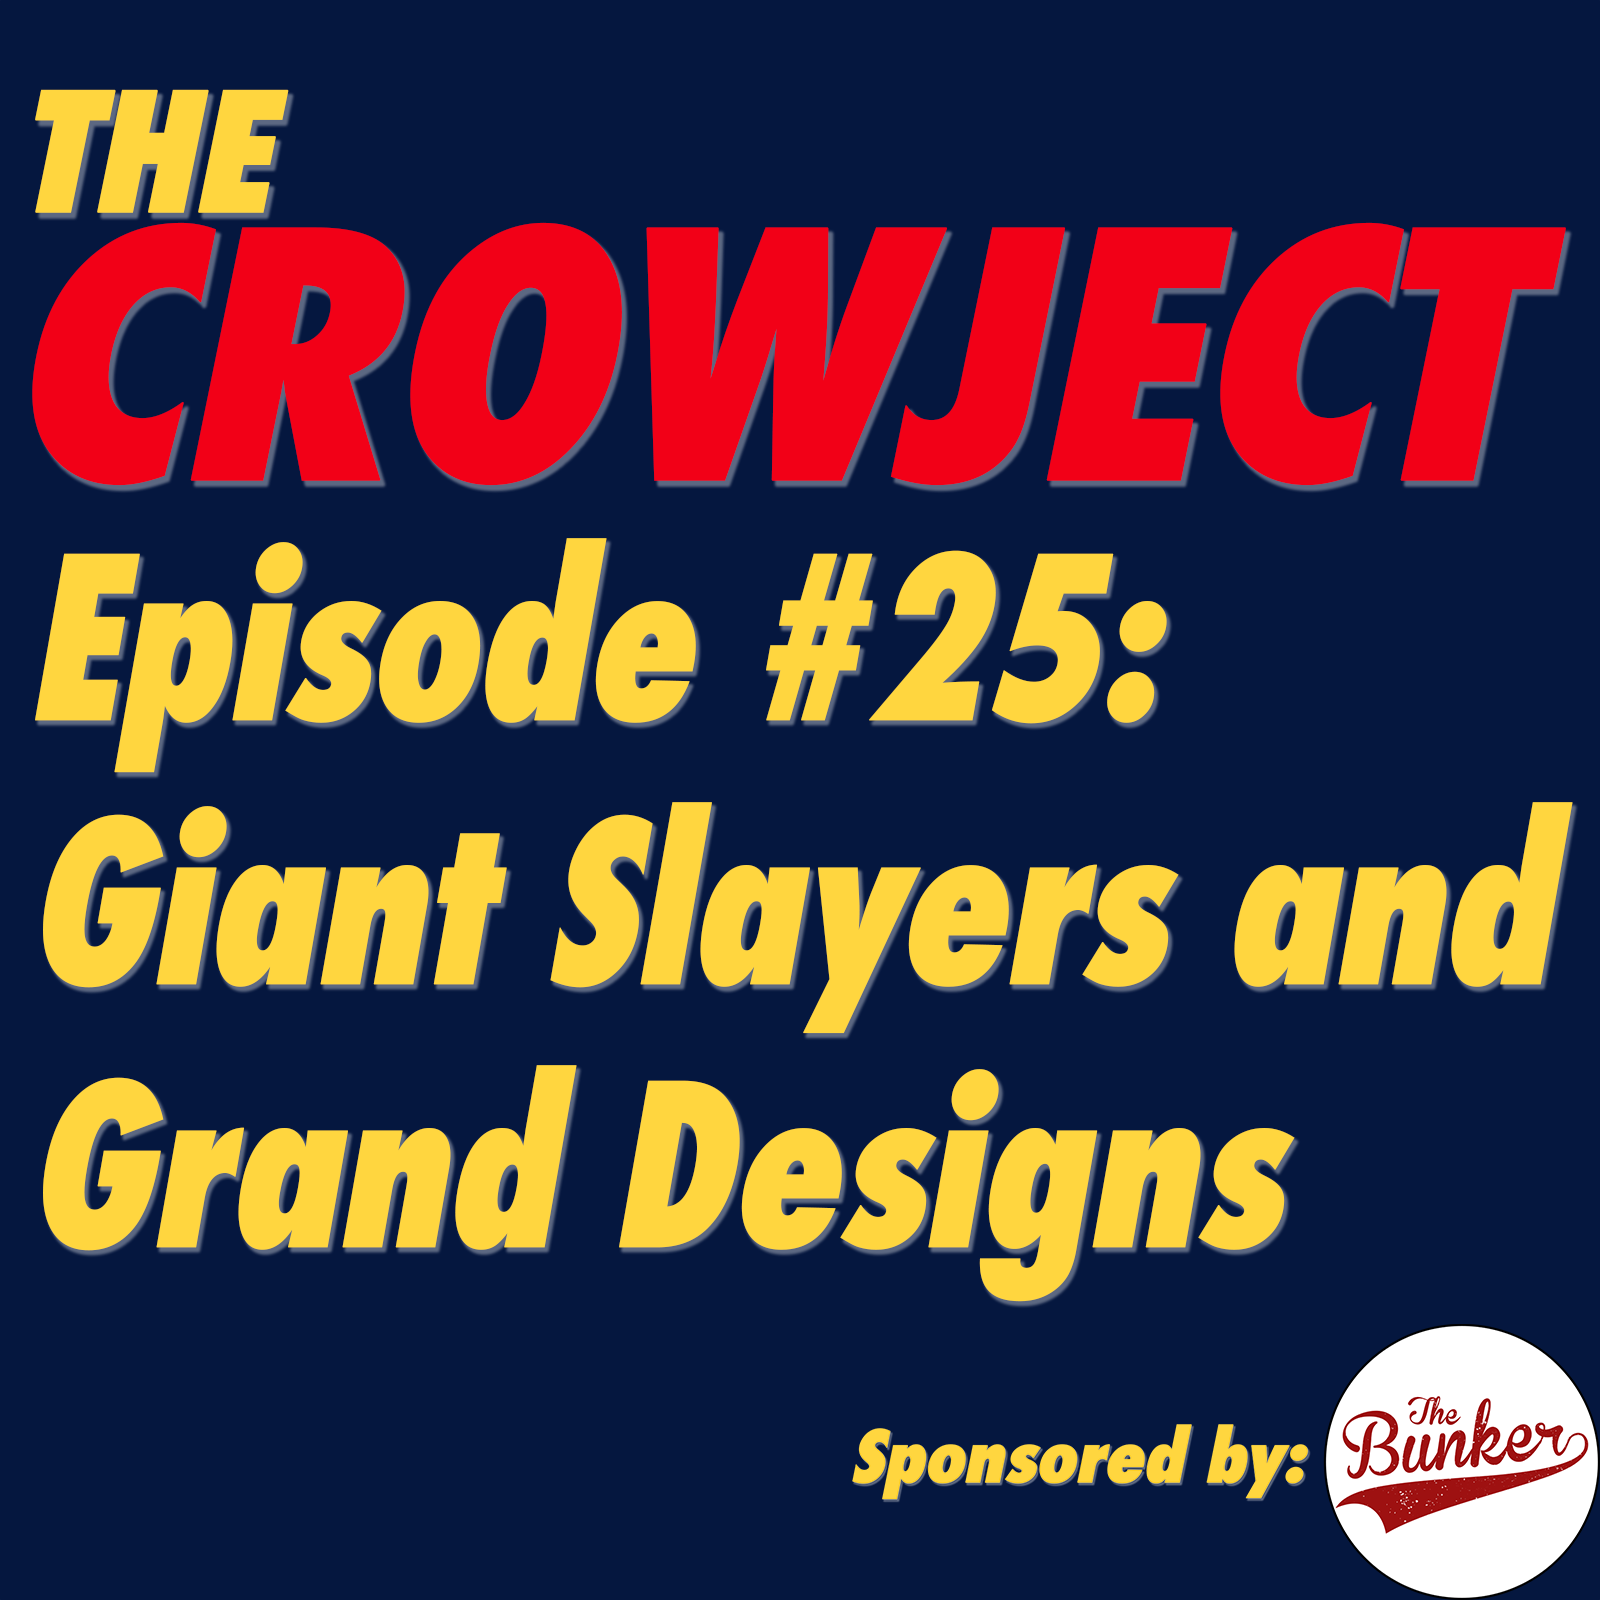 Giant Slayers and Grand Designs